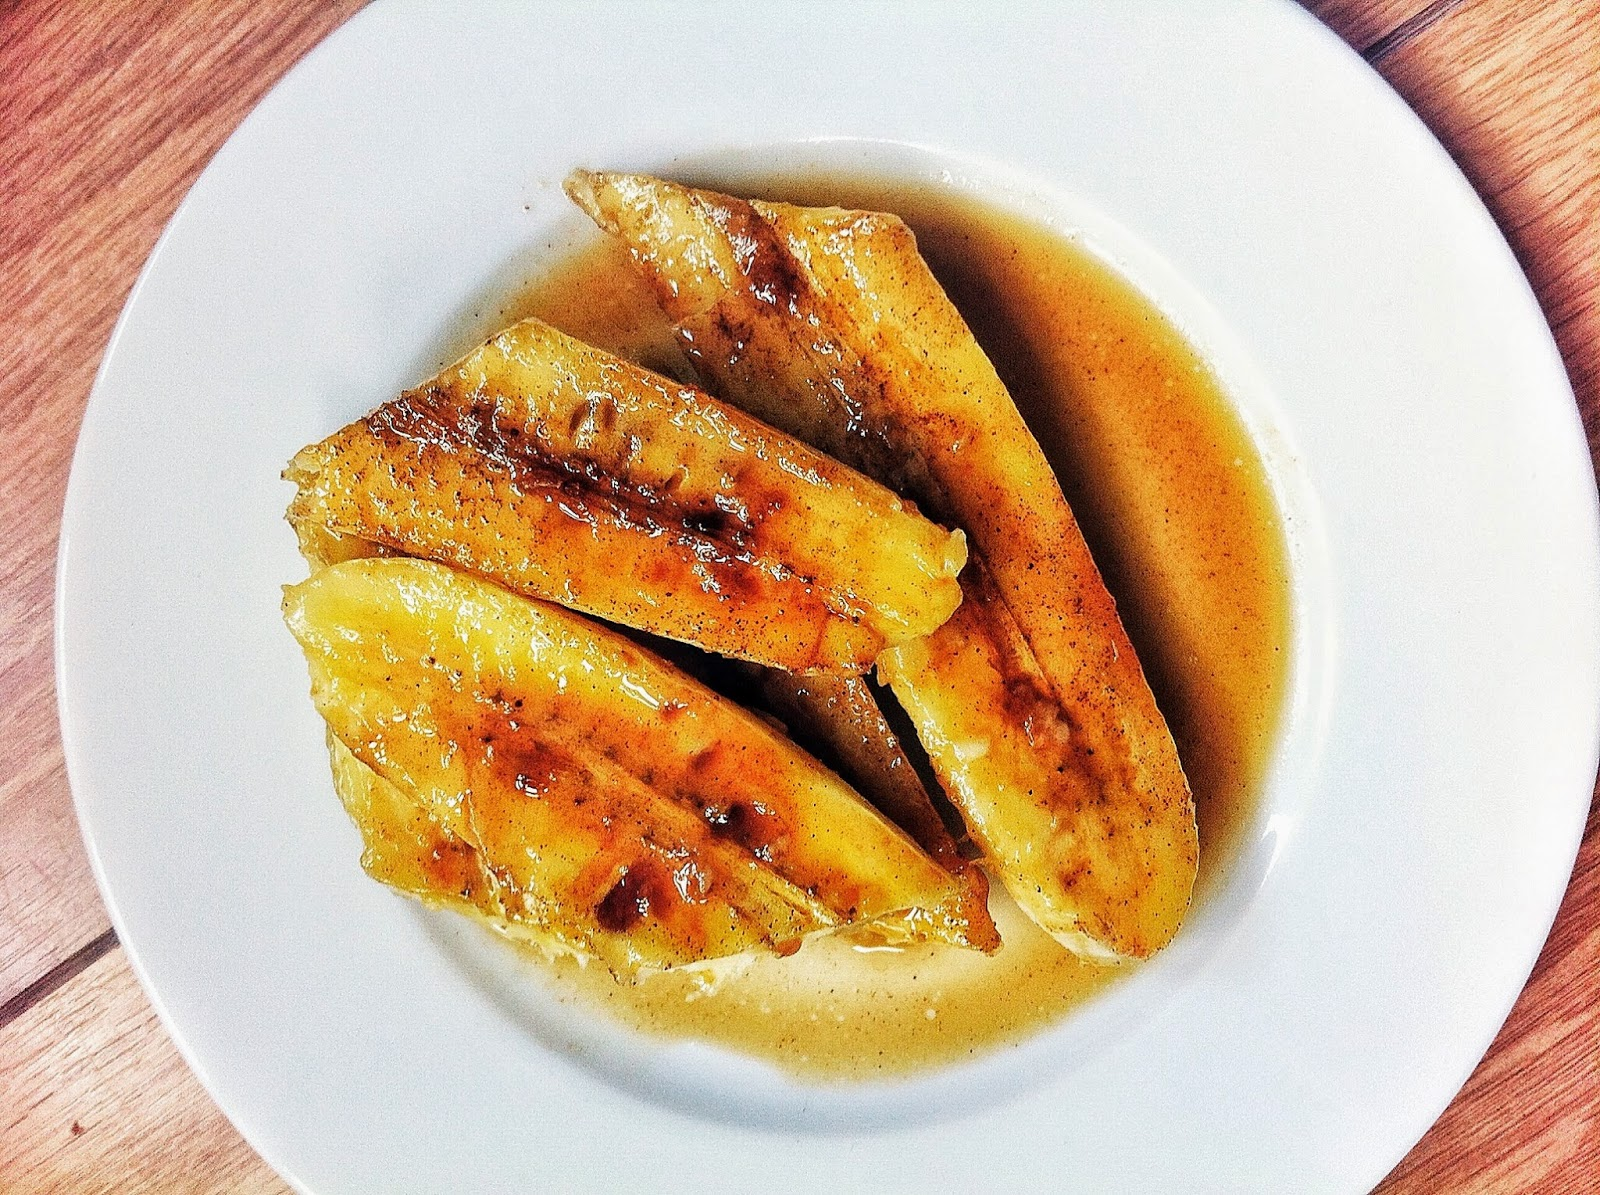 Baked bananas with a spiced sauce